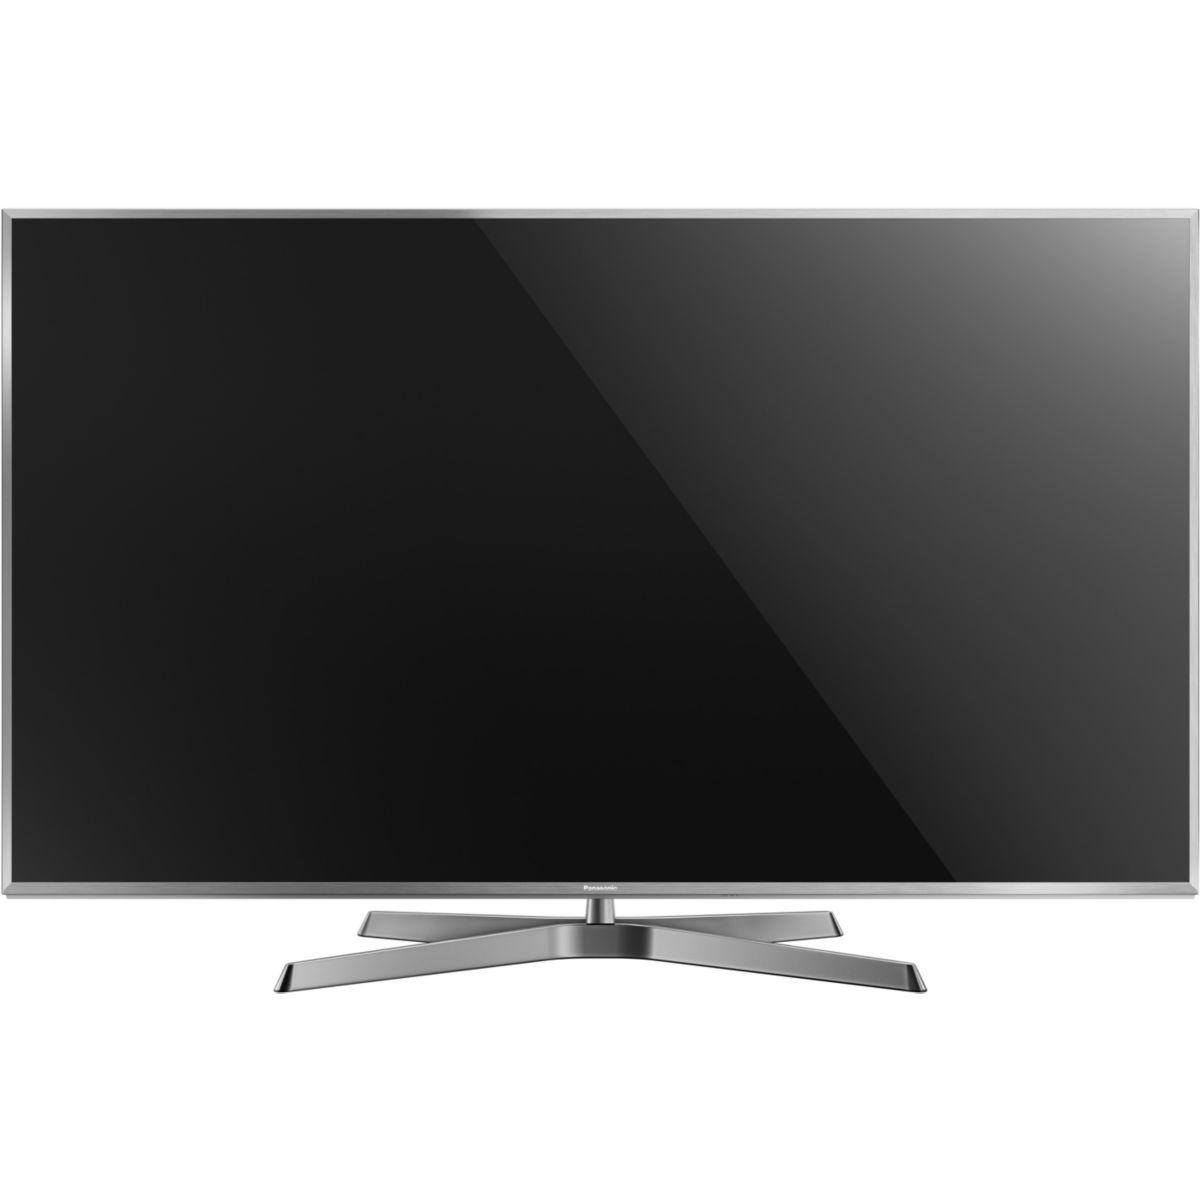 Tv panasonic tx-65ex780e 2400 bmr 4k hdr (photo)